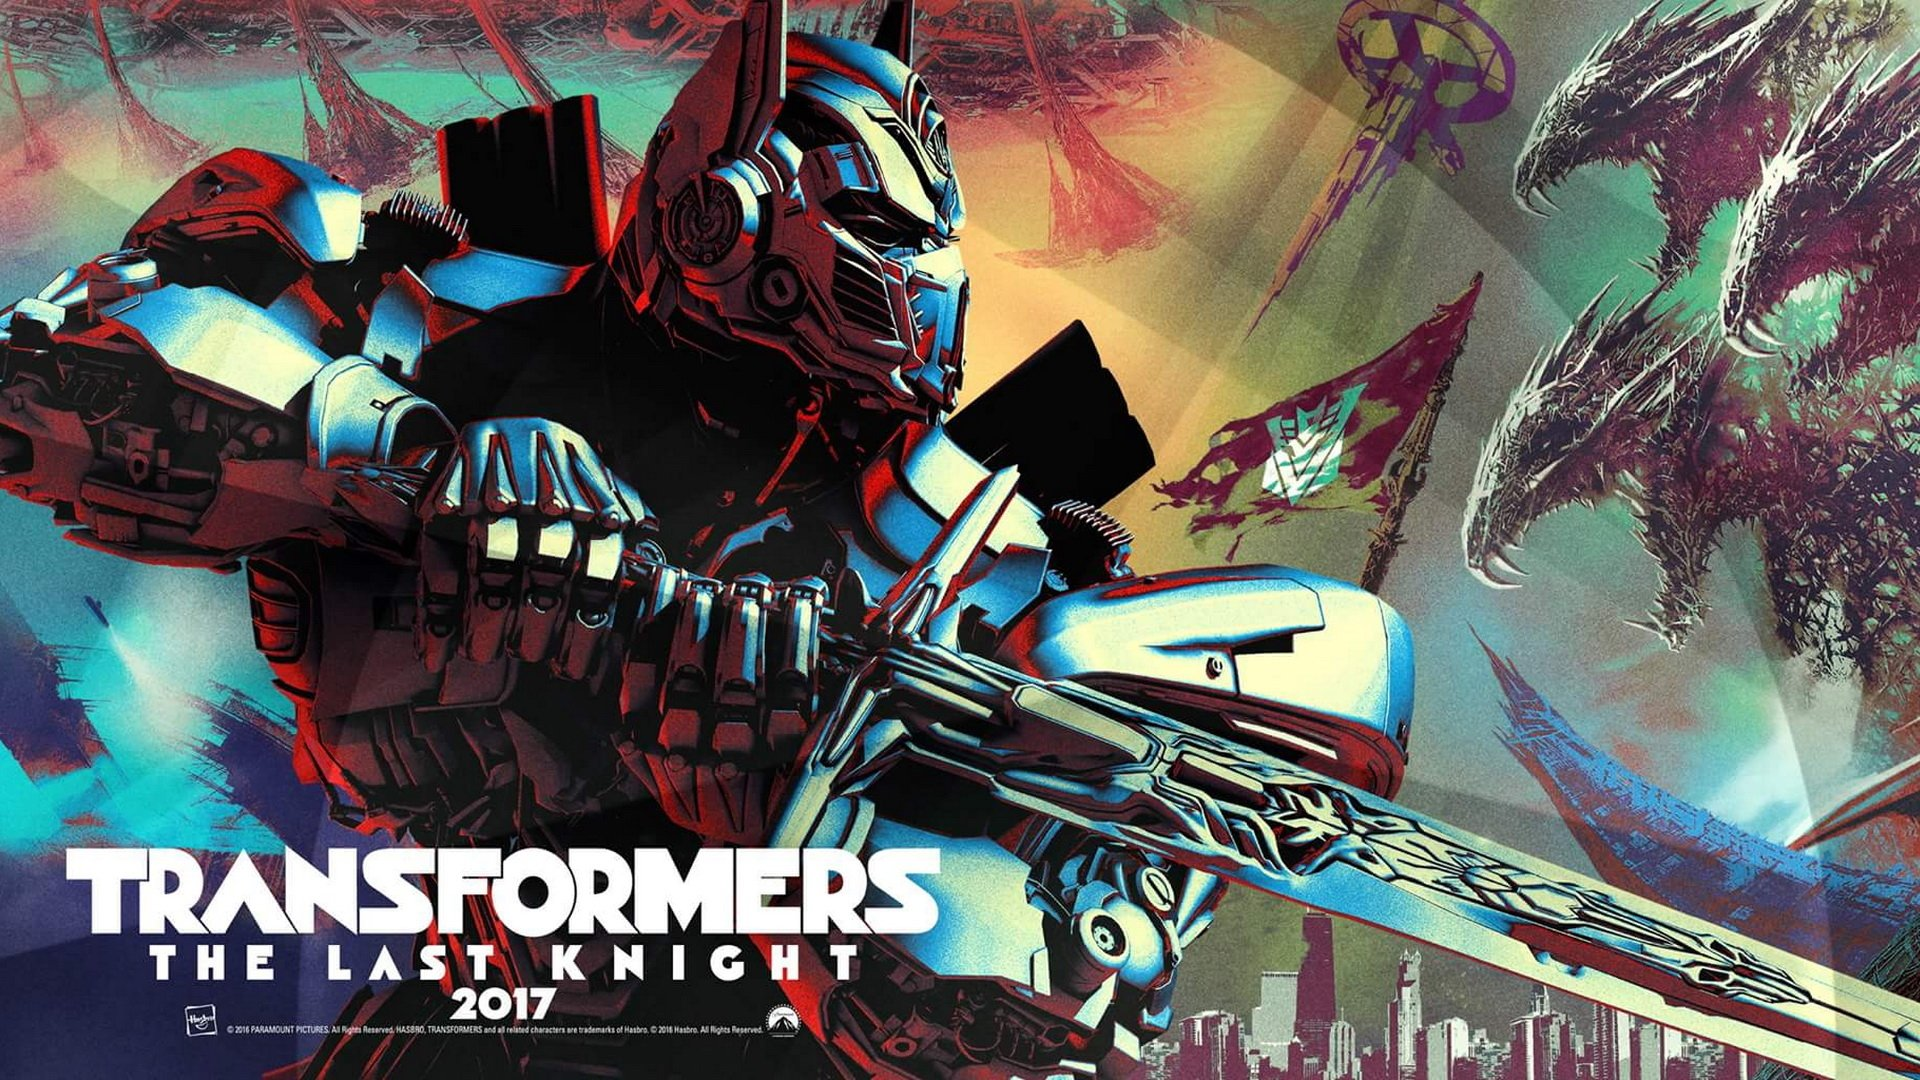 Transformers The Last Knight Full HD Wallpaper And Background Image